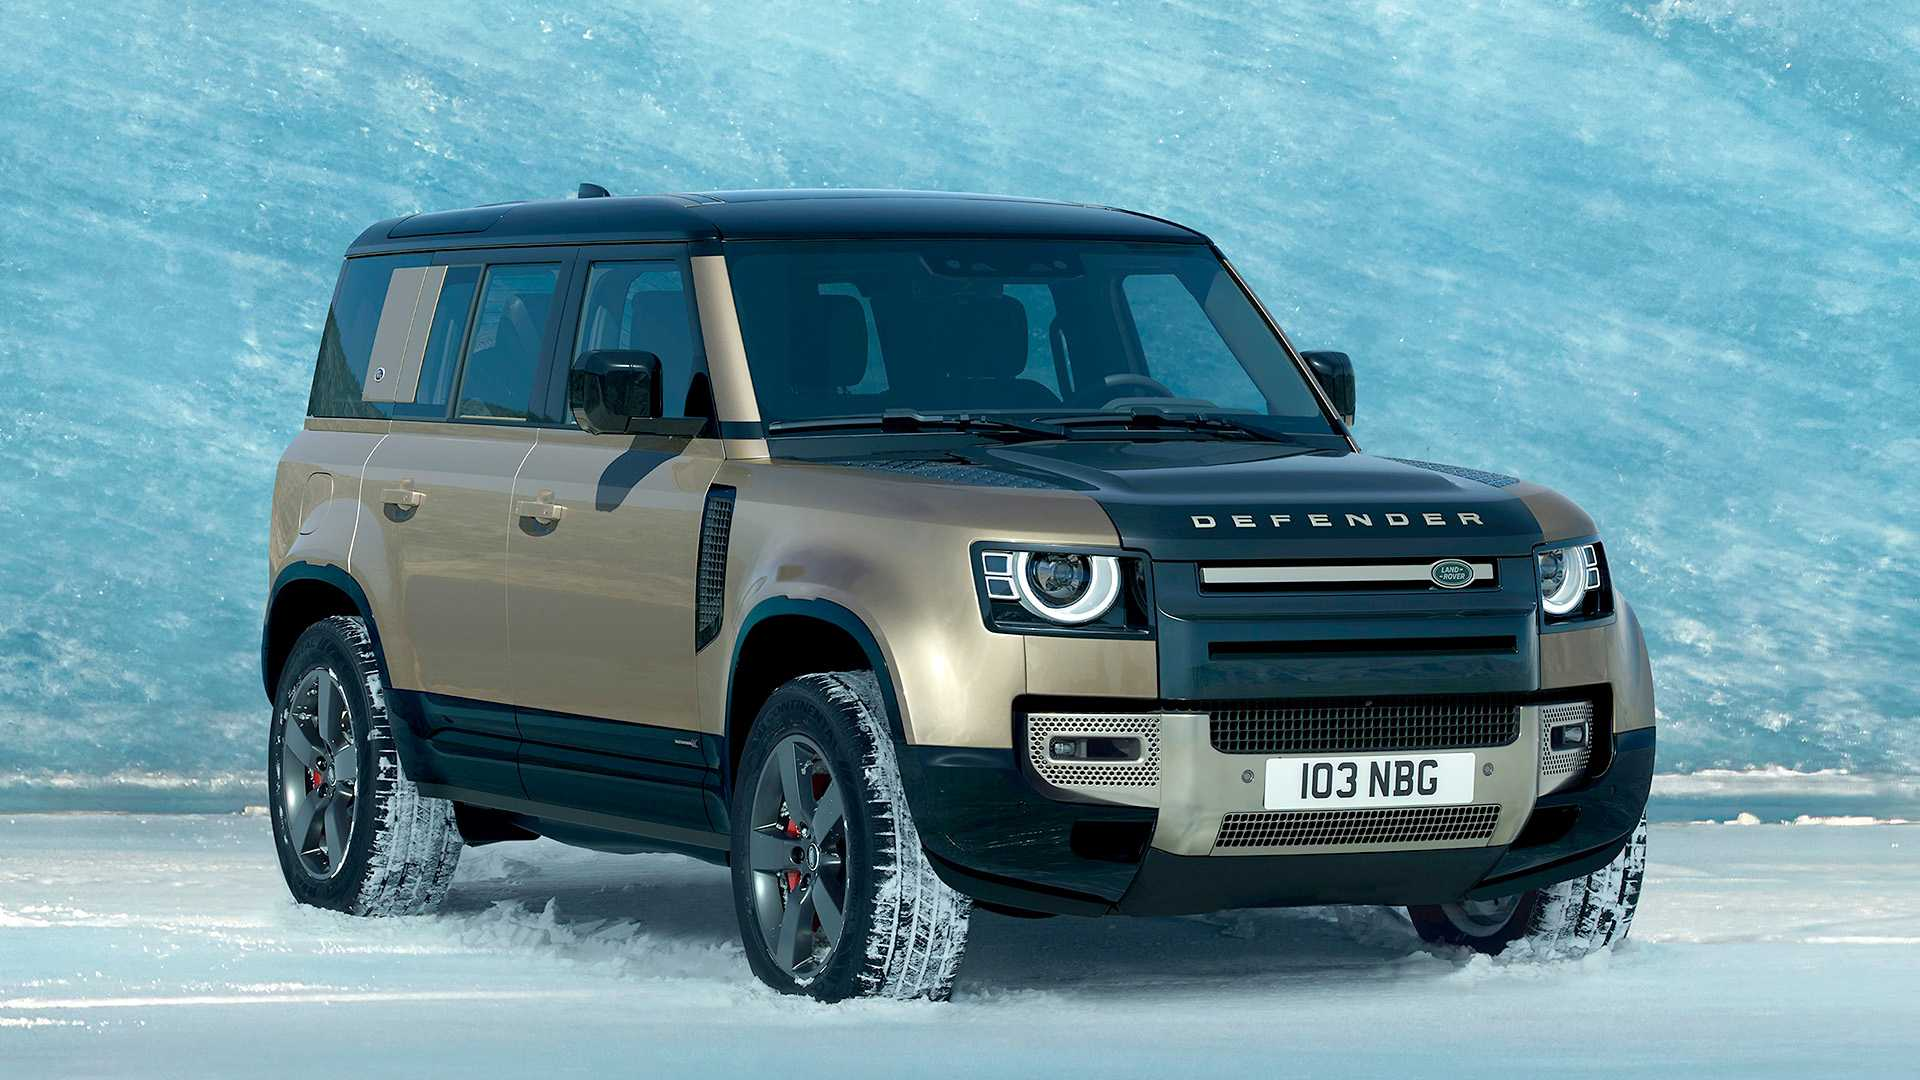 2020 Land Rover Defender Debuts With New Tech Old Charm 1920x1080